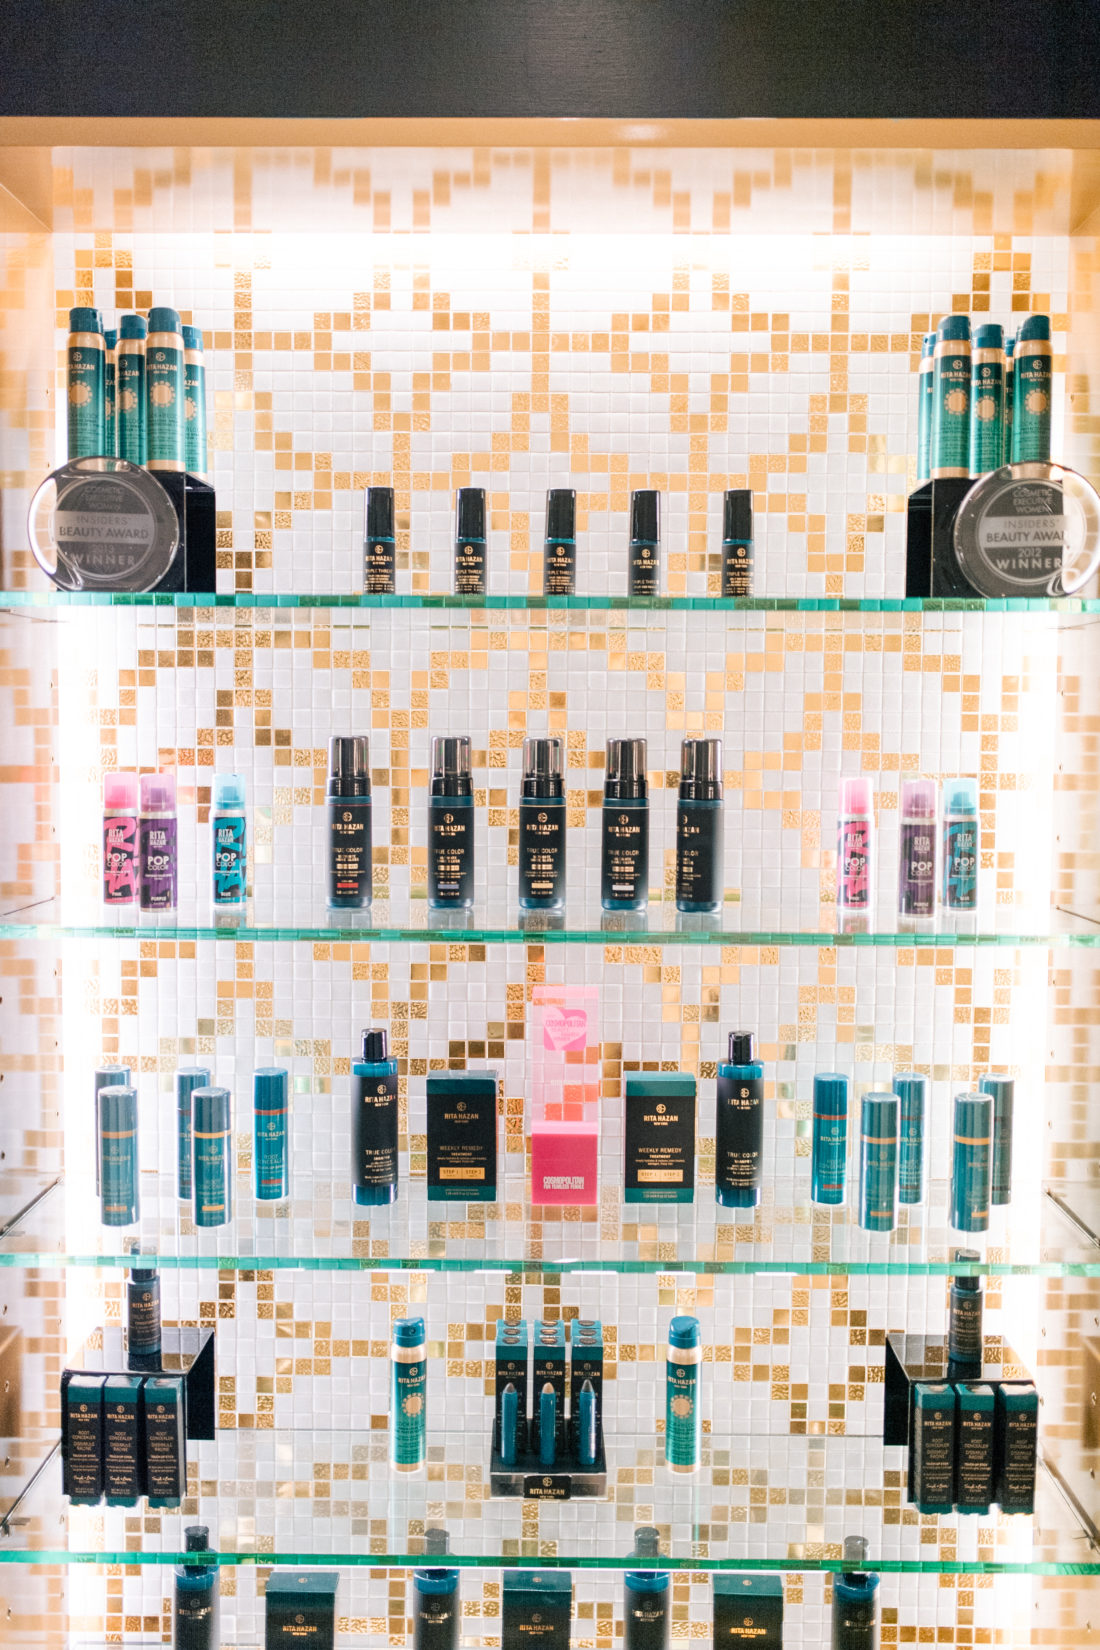 Rita Hazan's line of inclusive hair products for color-treated hair